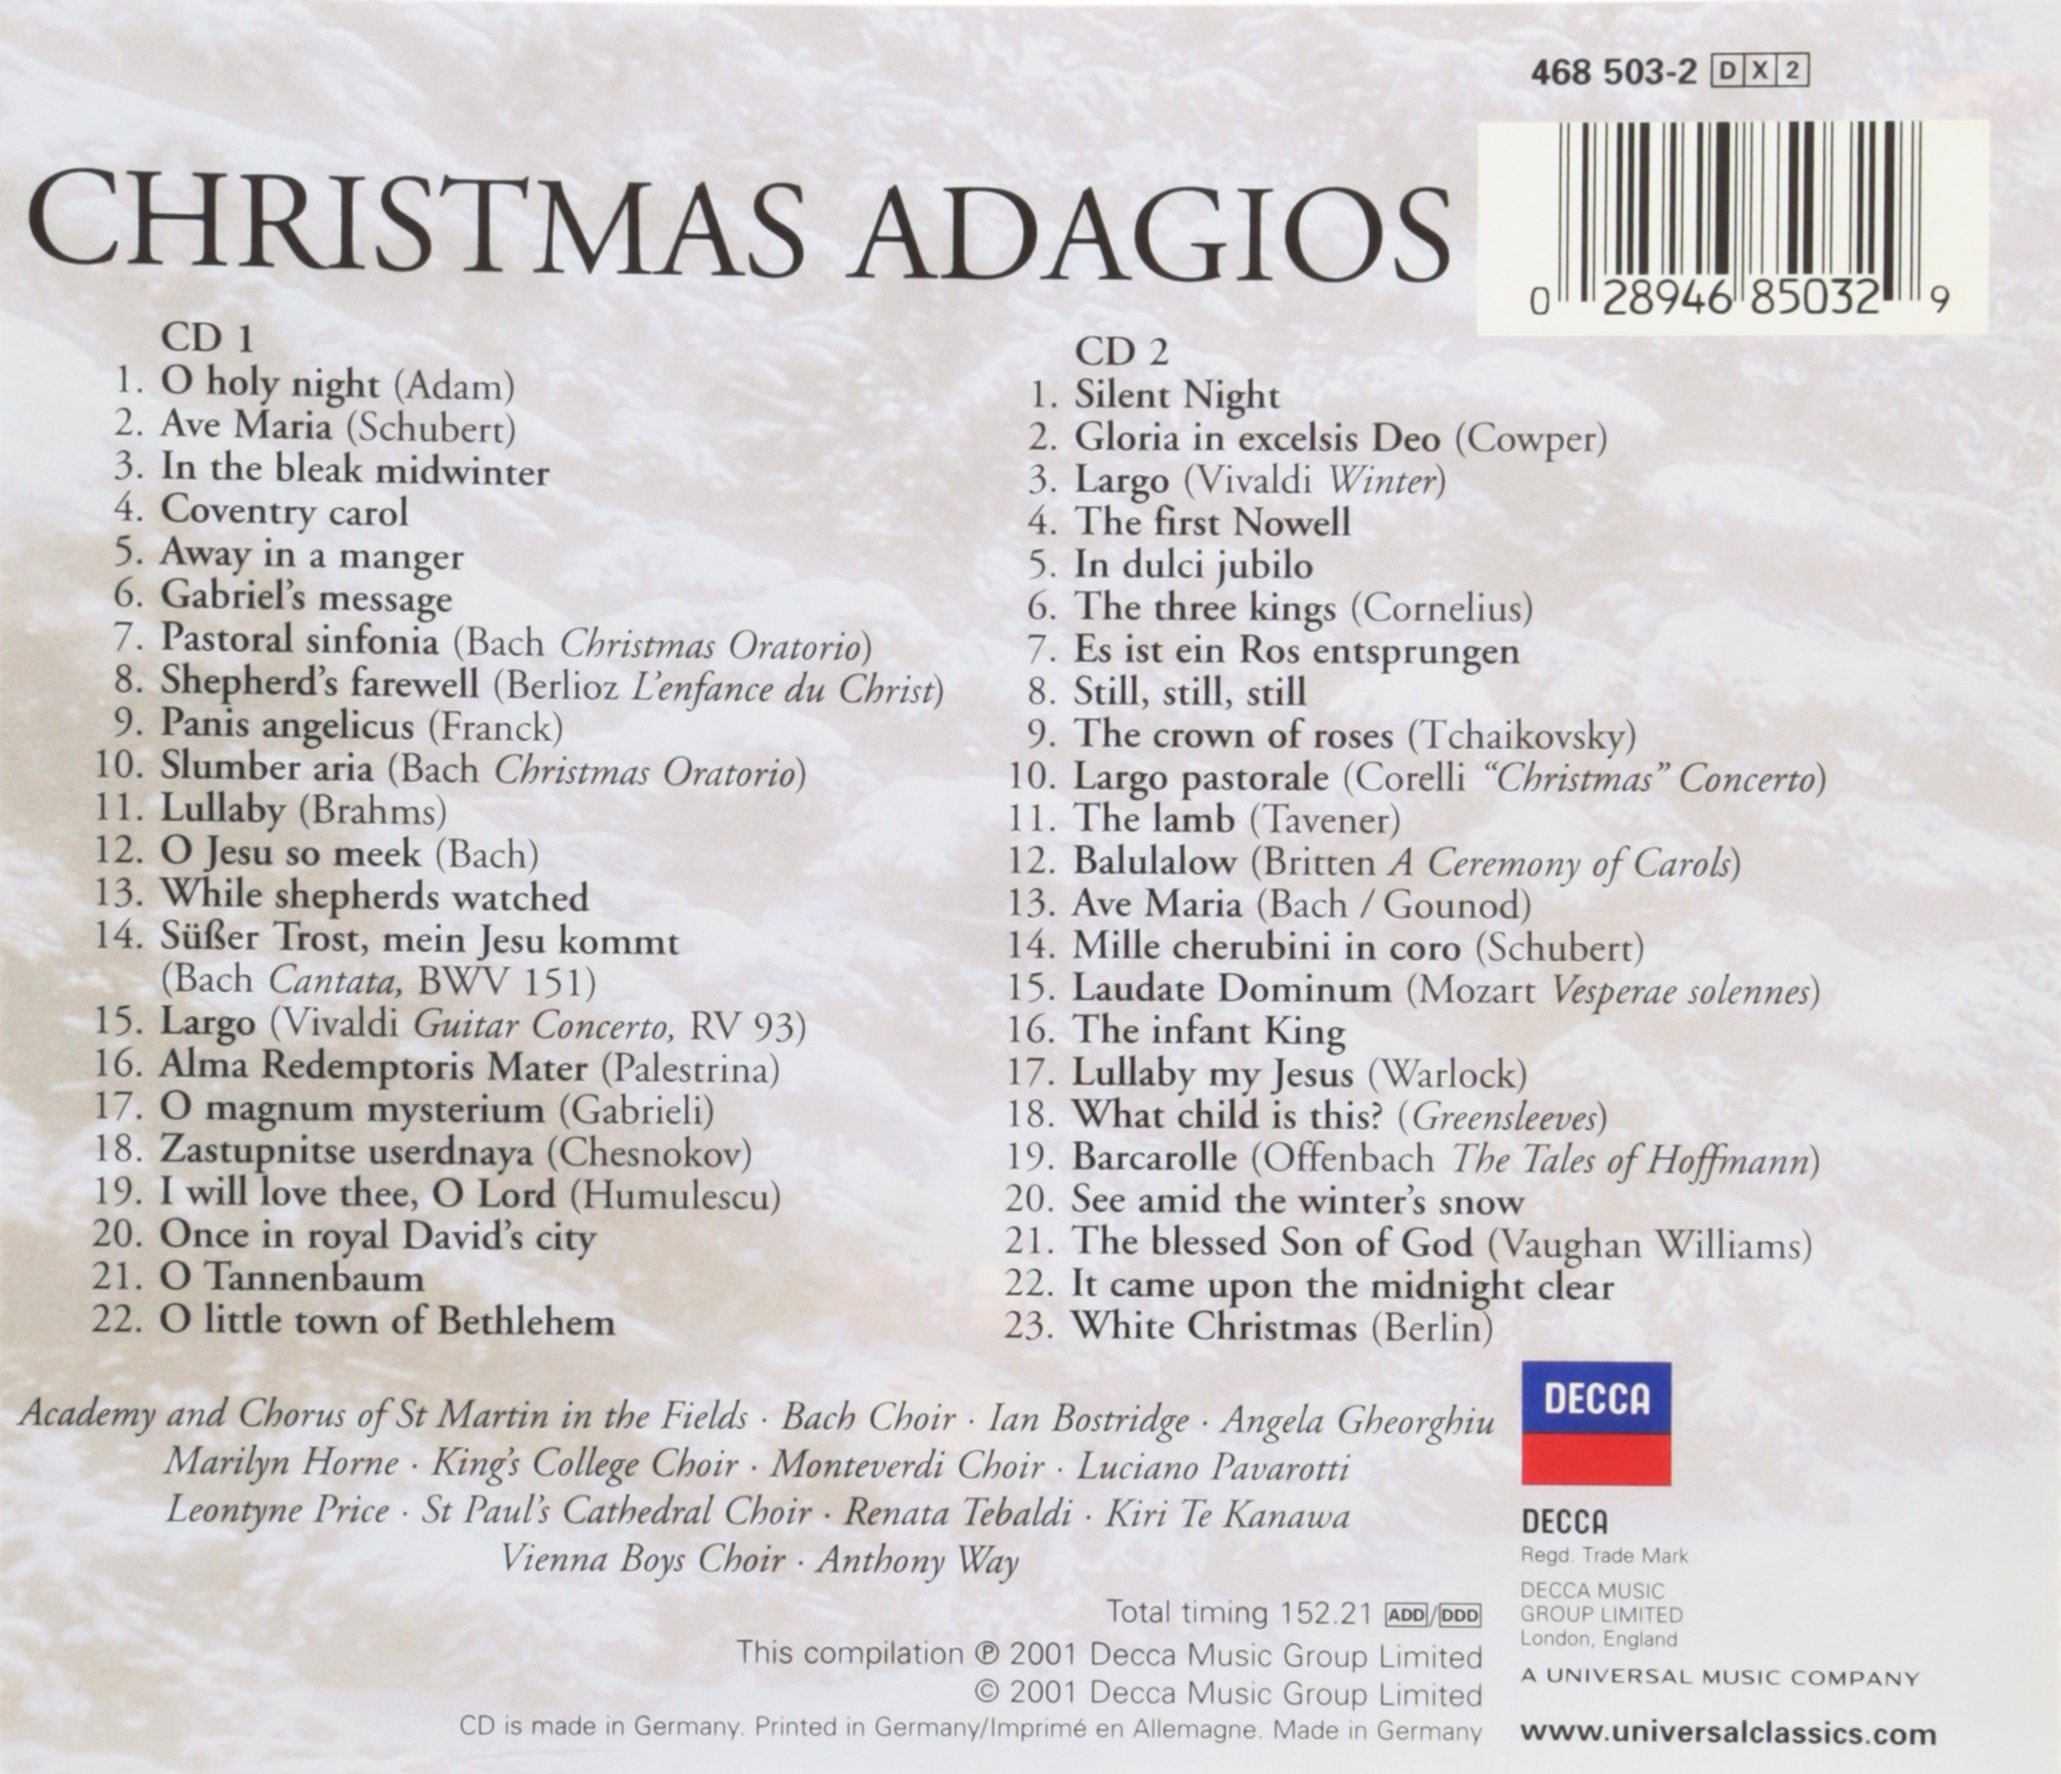 Christmas Adagios by Decca